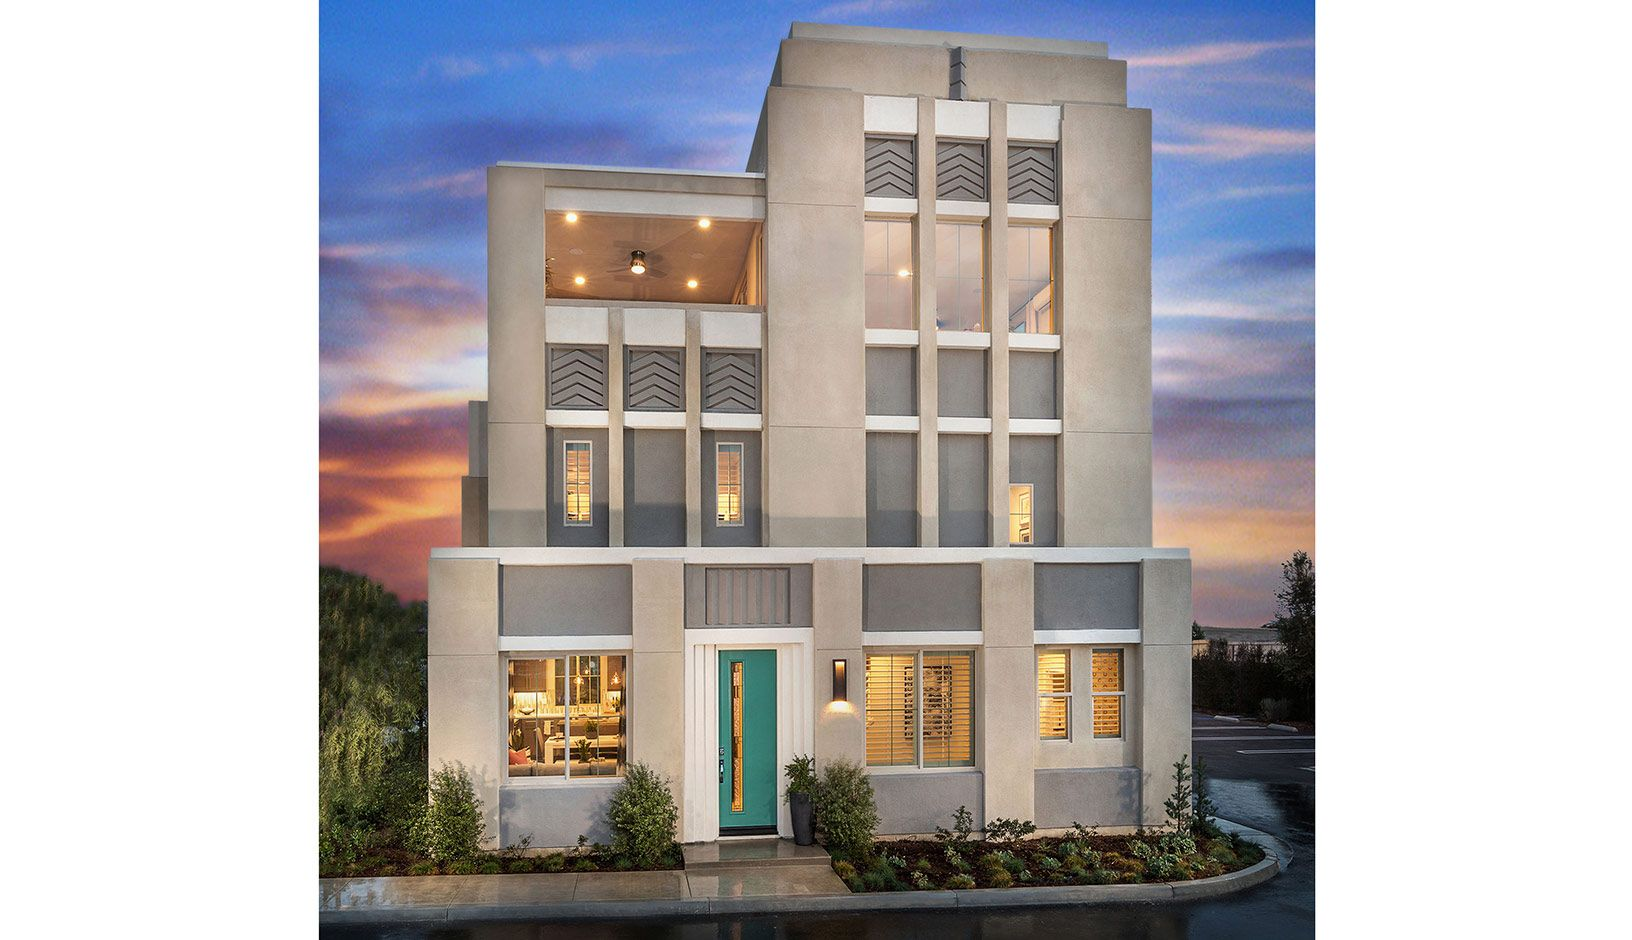 Single Family for Sale at Carlisle At Parasol Park - Residence 3 Alt 241 Carmine Irvine, California 92618 United States